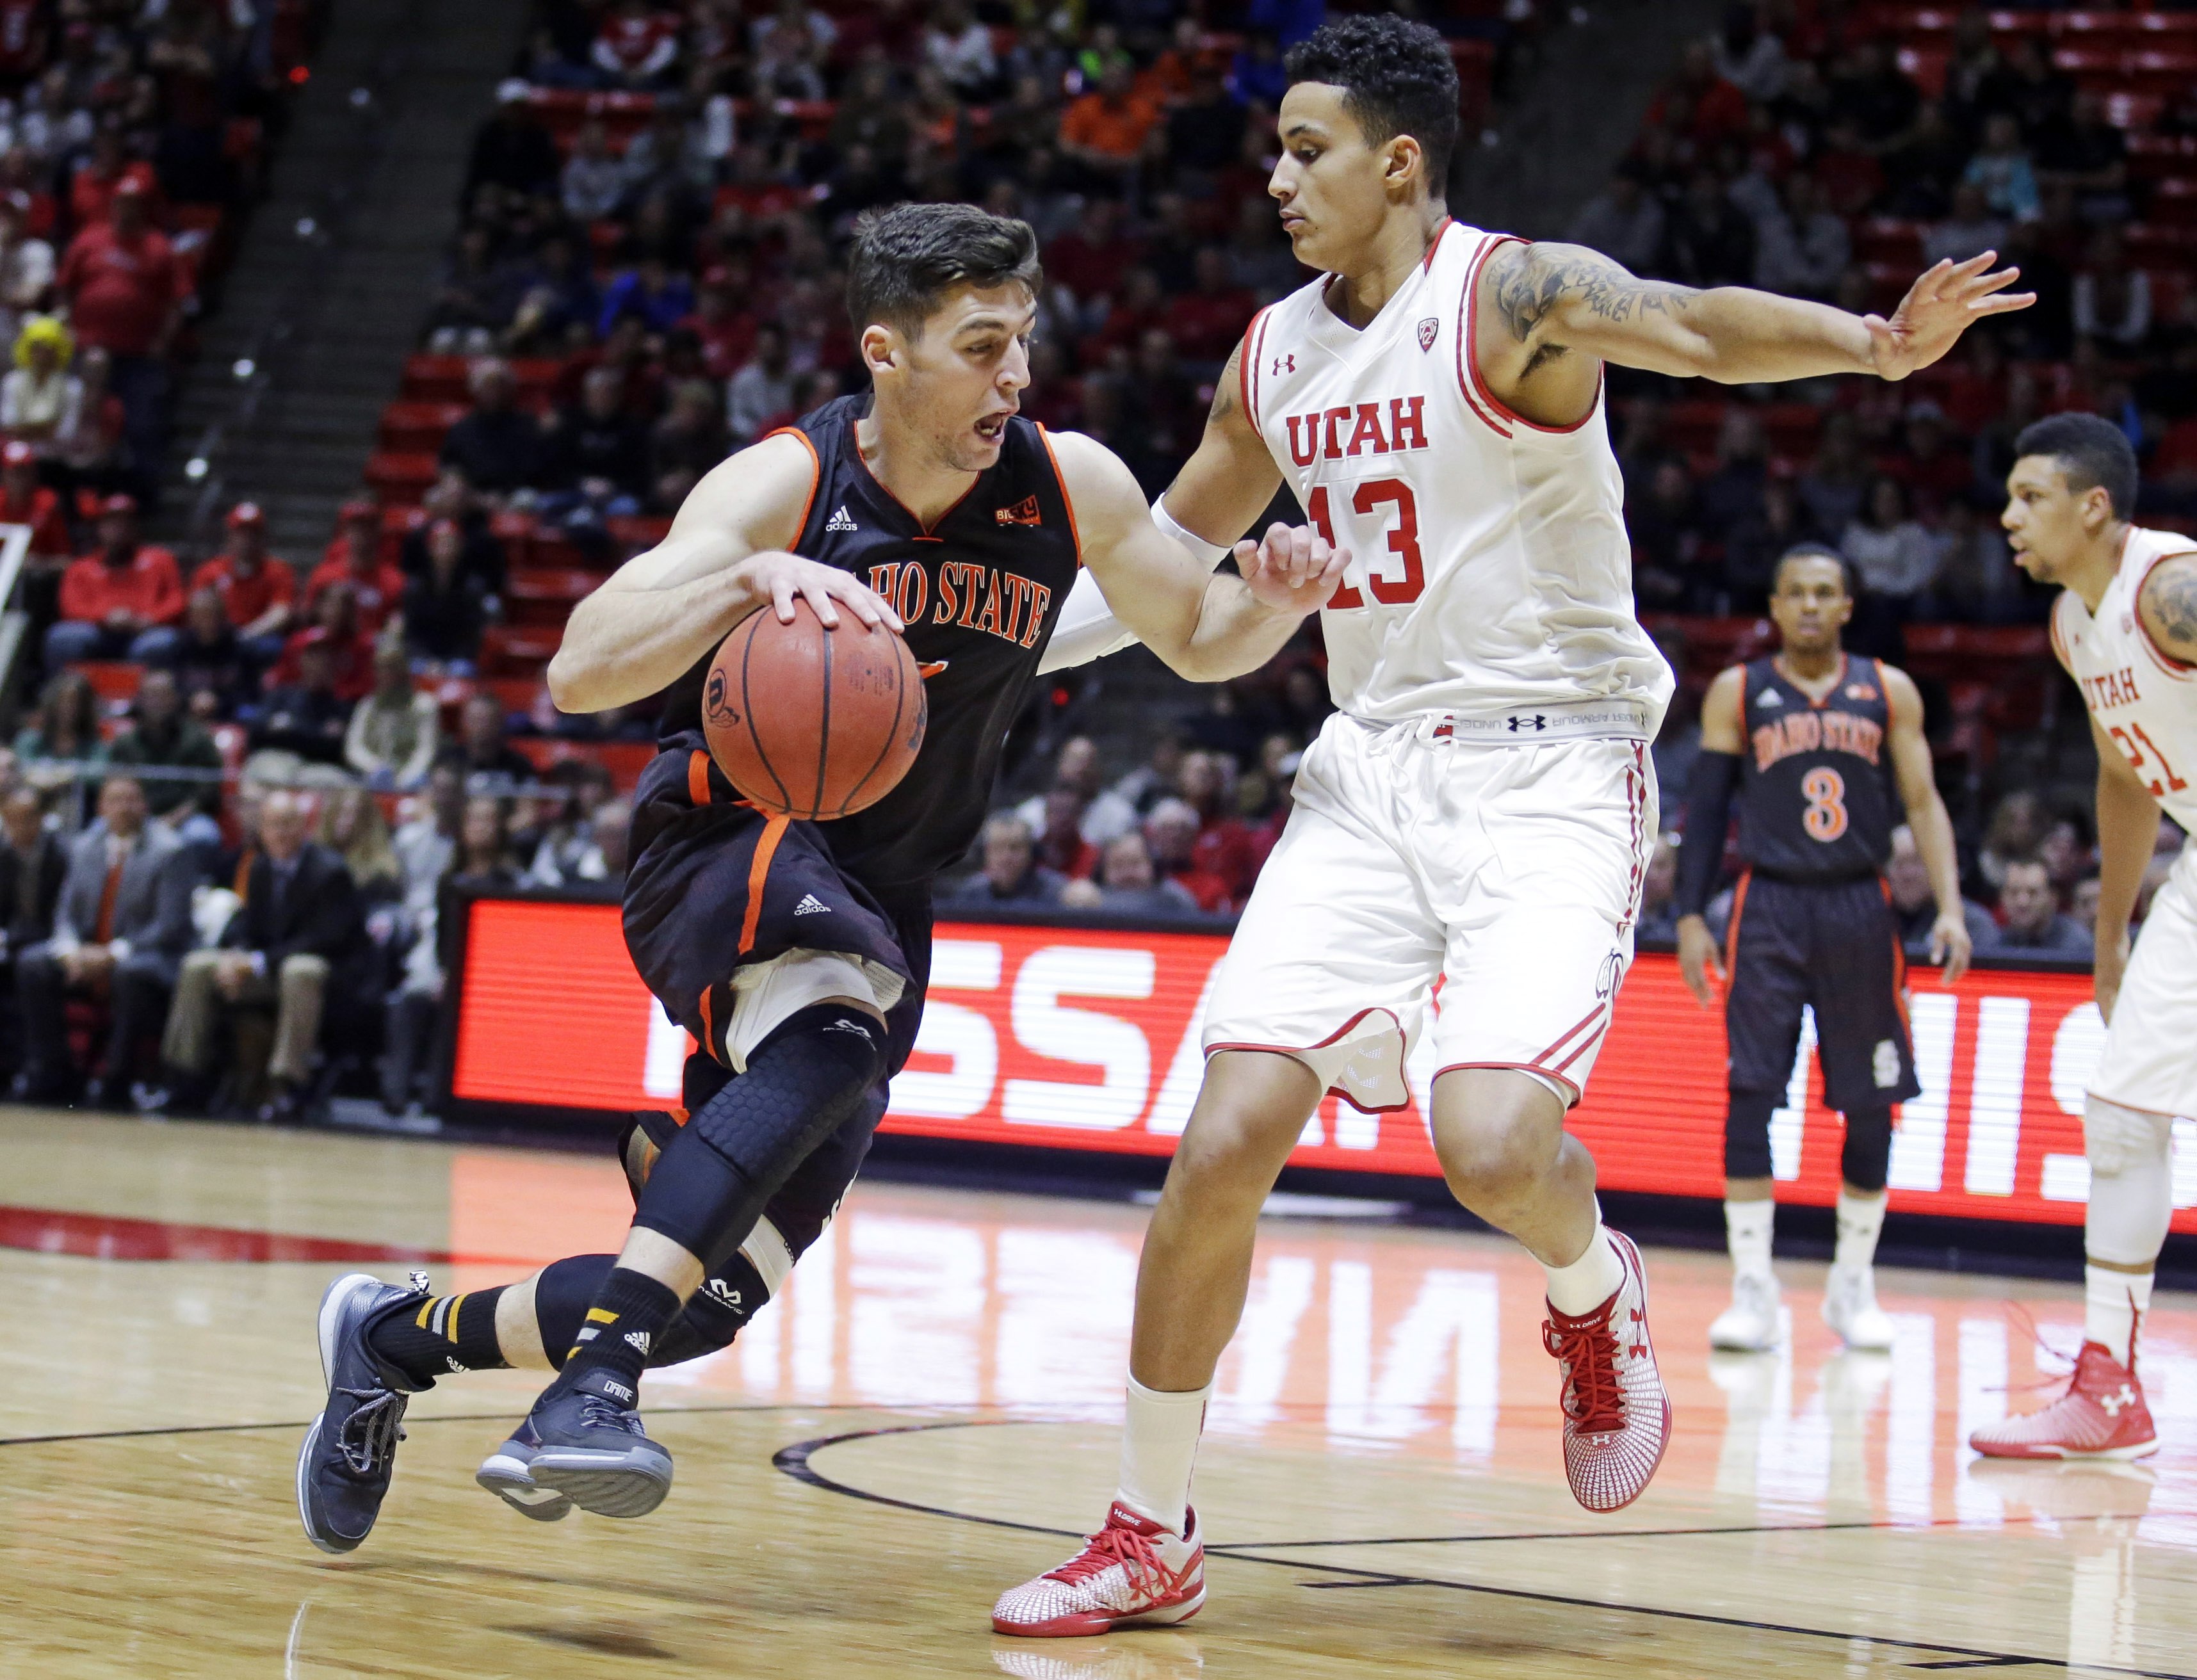 Idaho State guard Ben Wilson, left, drives around Utah forward Kyle Kuzma (13) in the first half during an NCAA college basketball game Friday, Nov. 27, 2015, in Salt Lake City. (AP Photo/Rick Bowmer)